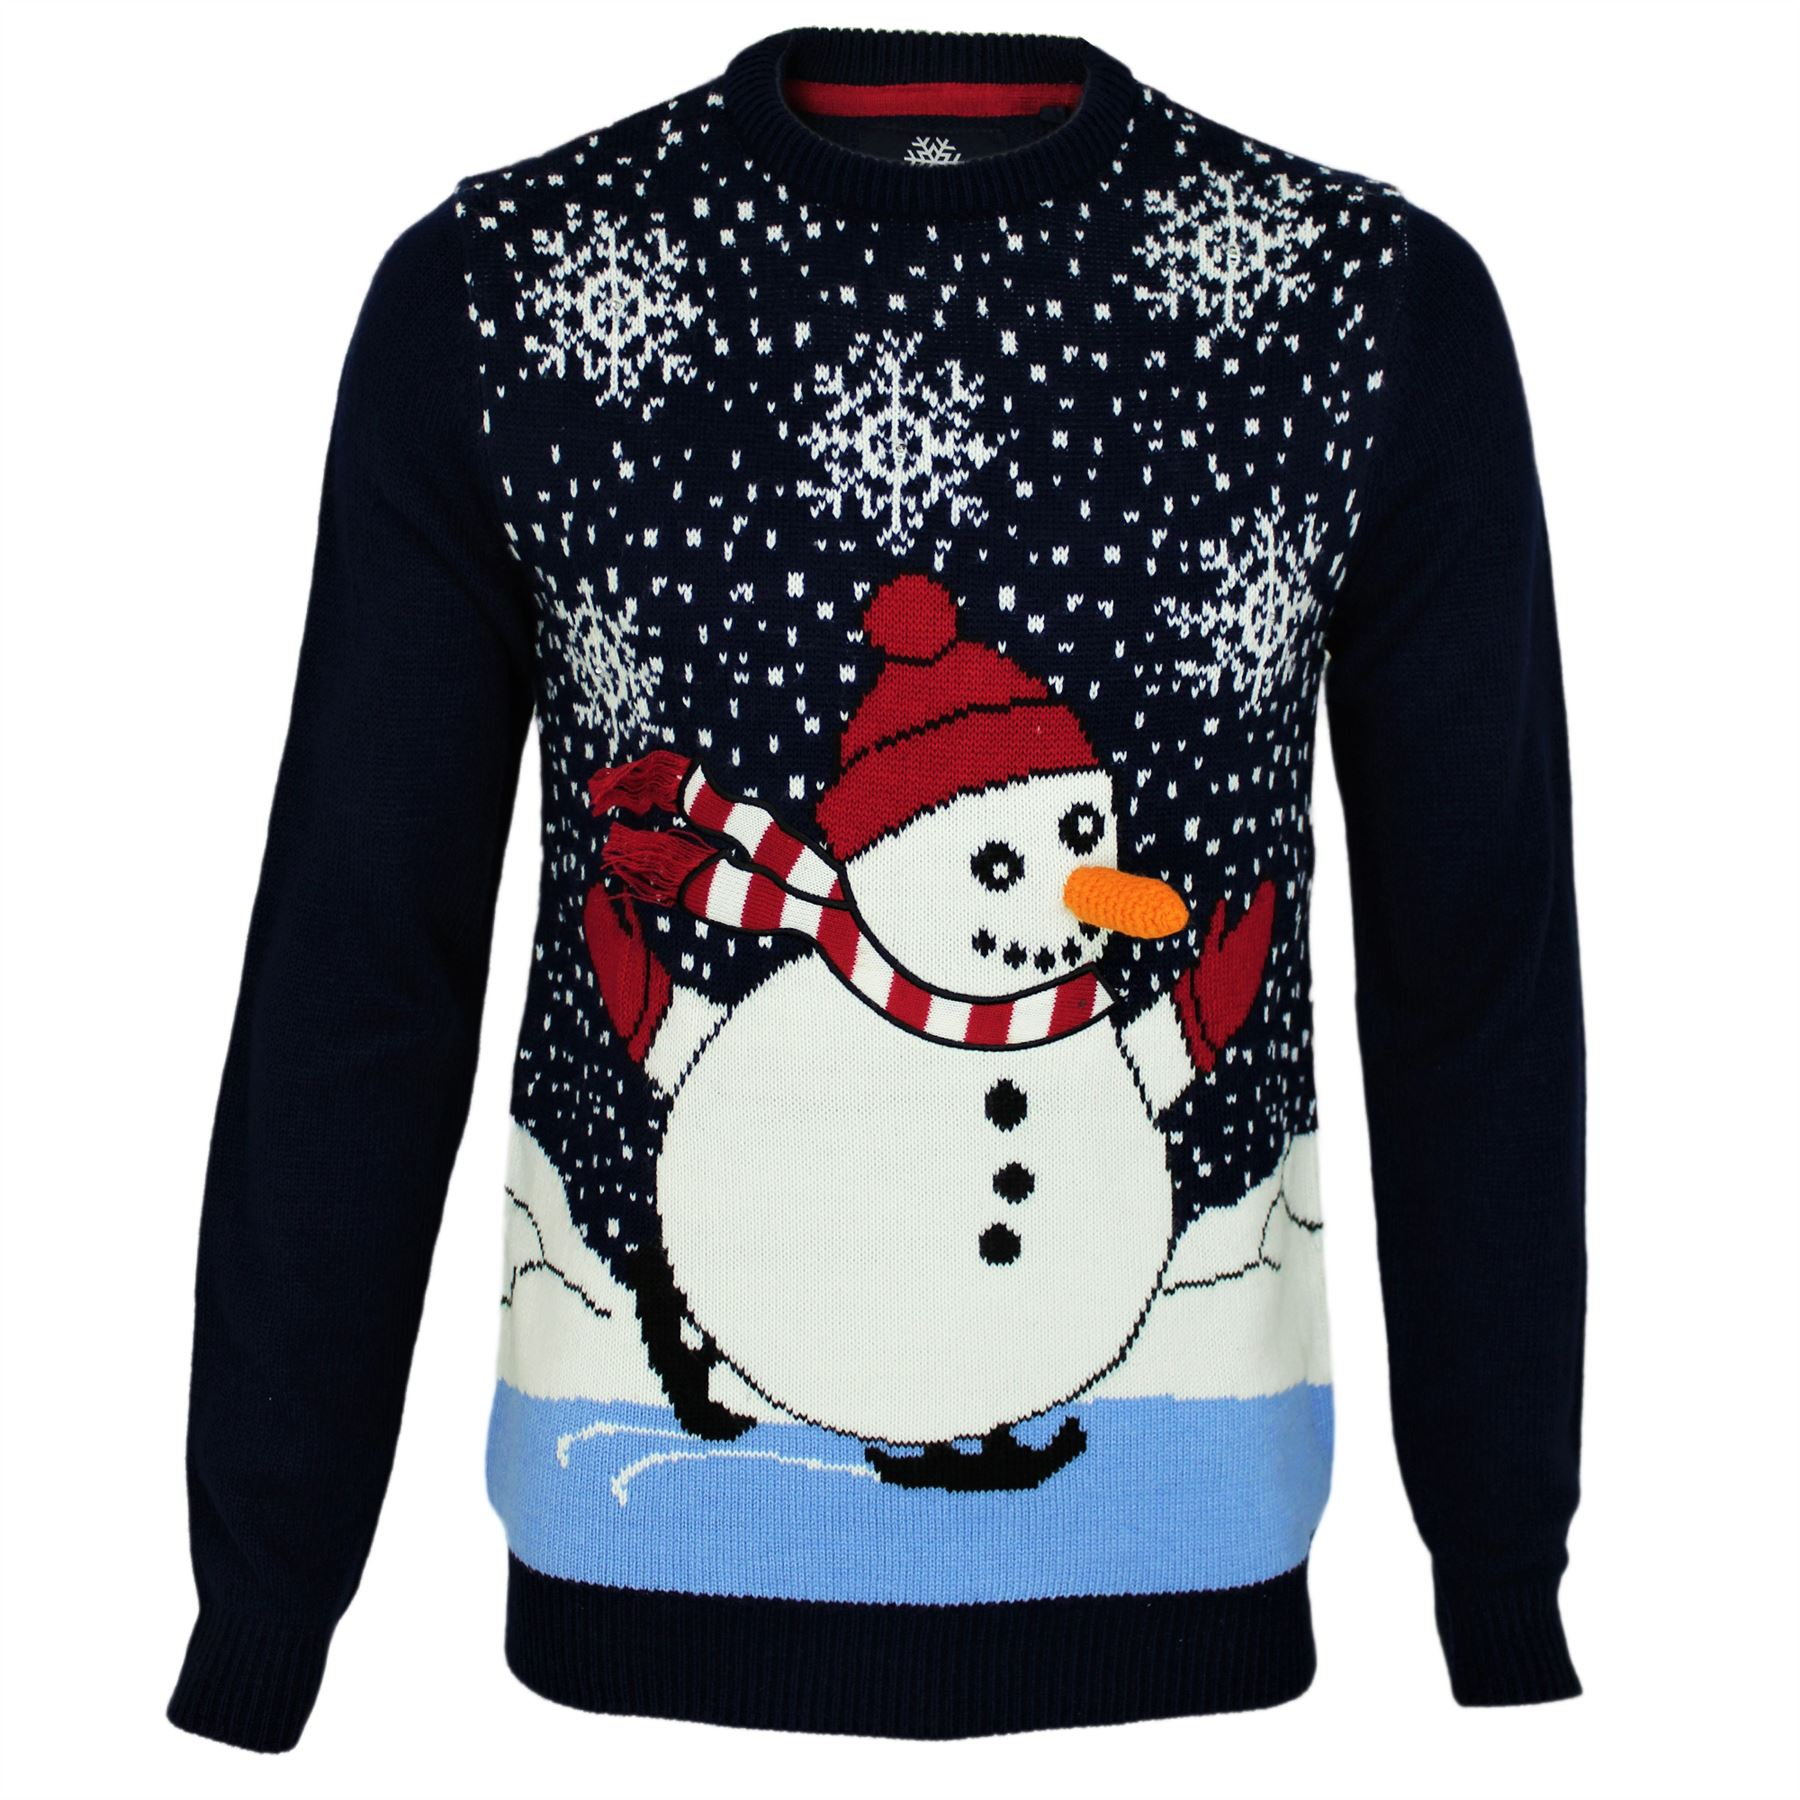 When it comes to men's Christmas sweaters, we've got it all, folks. It's a man's world and nakedprogrammzce.cf is the easiest and fastest place to shop for the men of the world who are looking for the ultimate in men's ugly Christmas sweater fame.